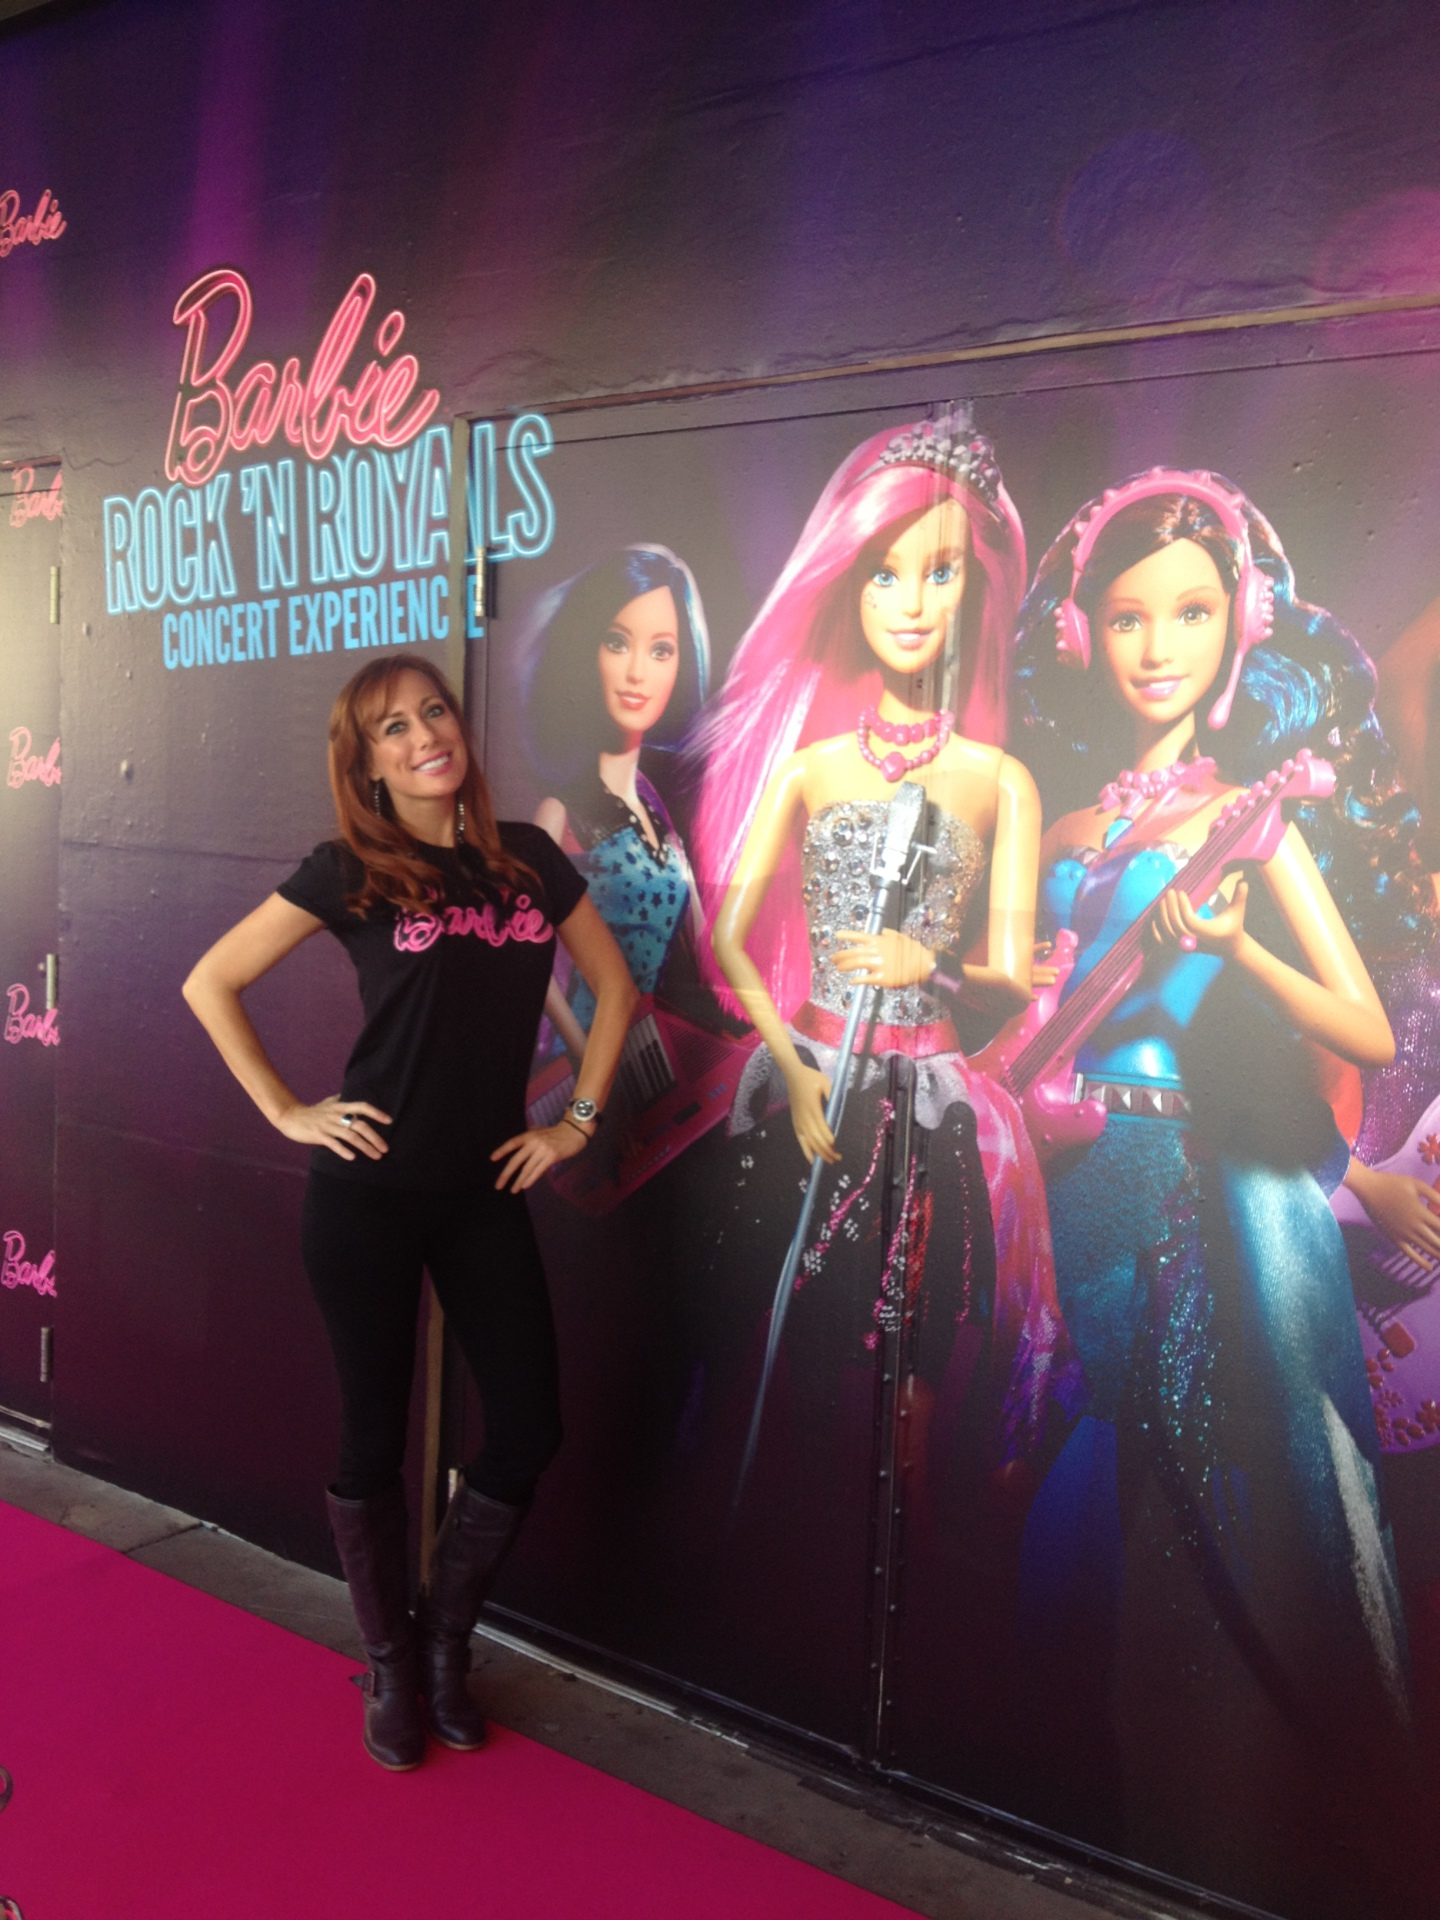 Barbie Rock & Royals Concert Pink Carpet Event